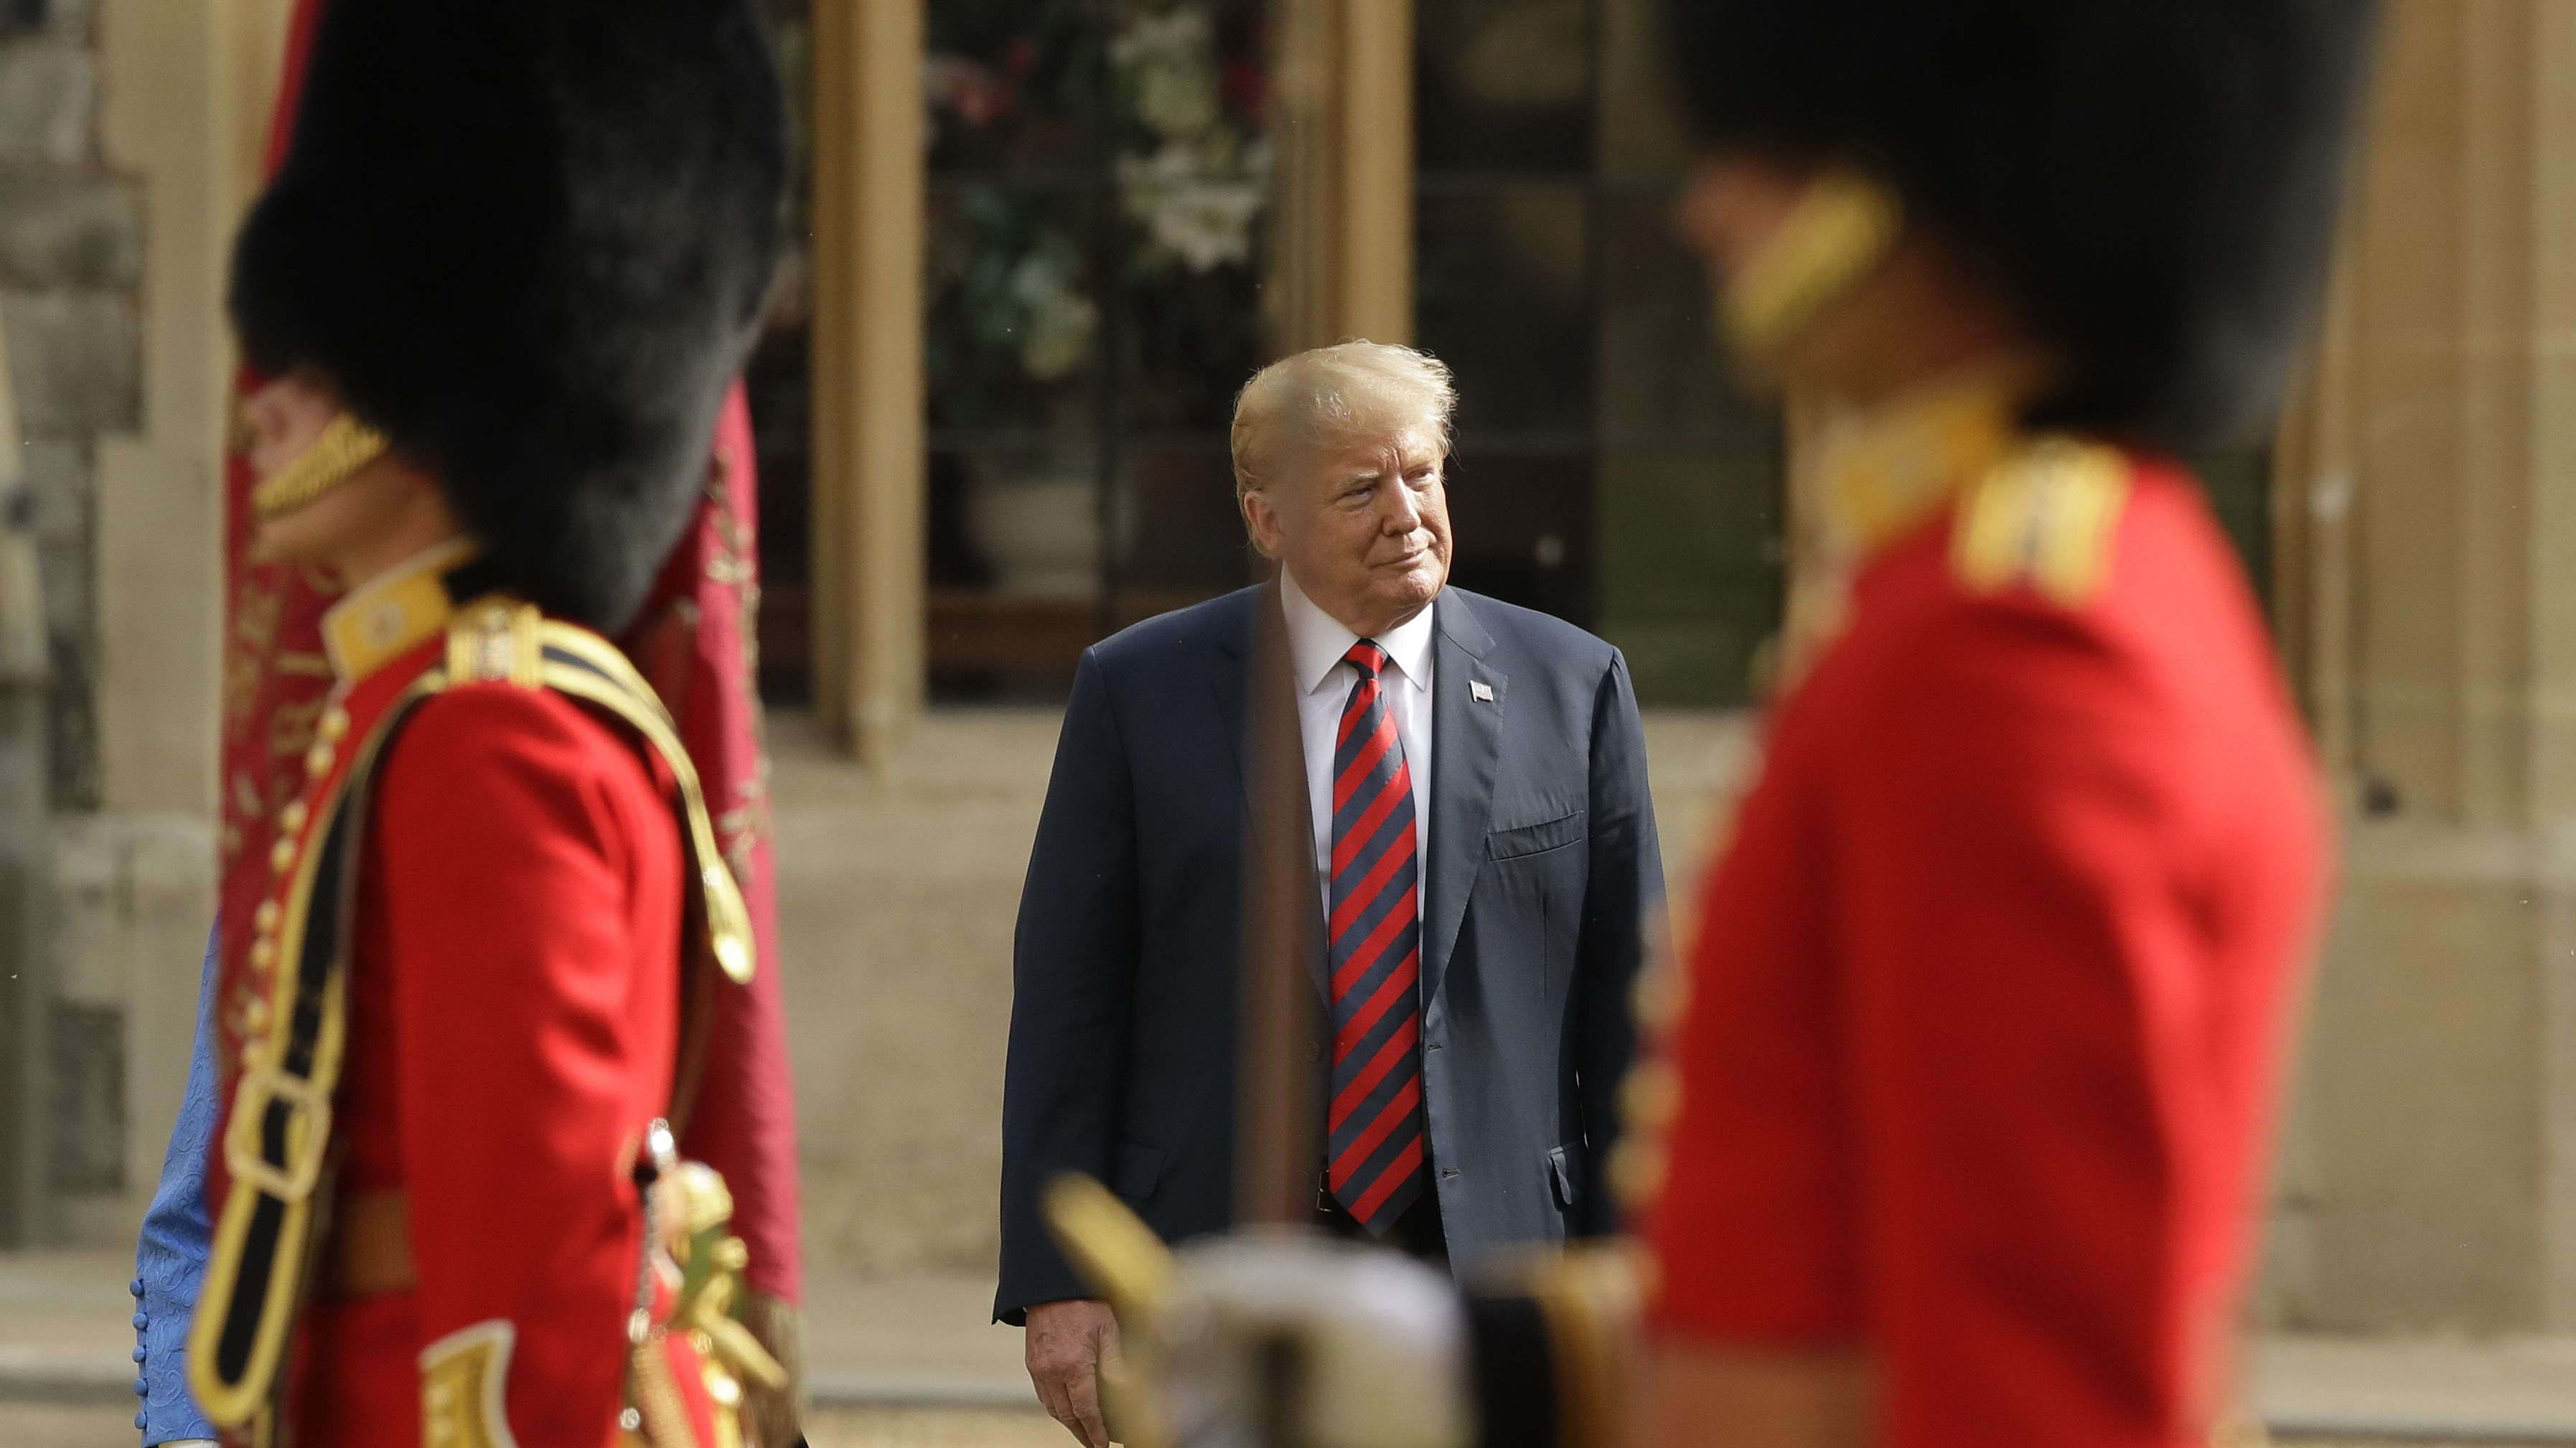 Archivbild: Donald Trump in London 2018